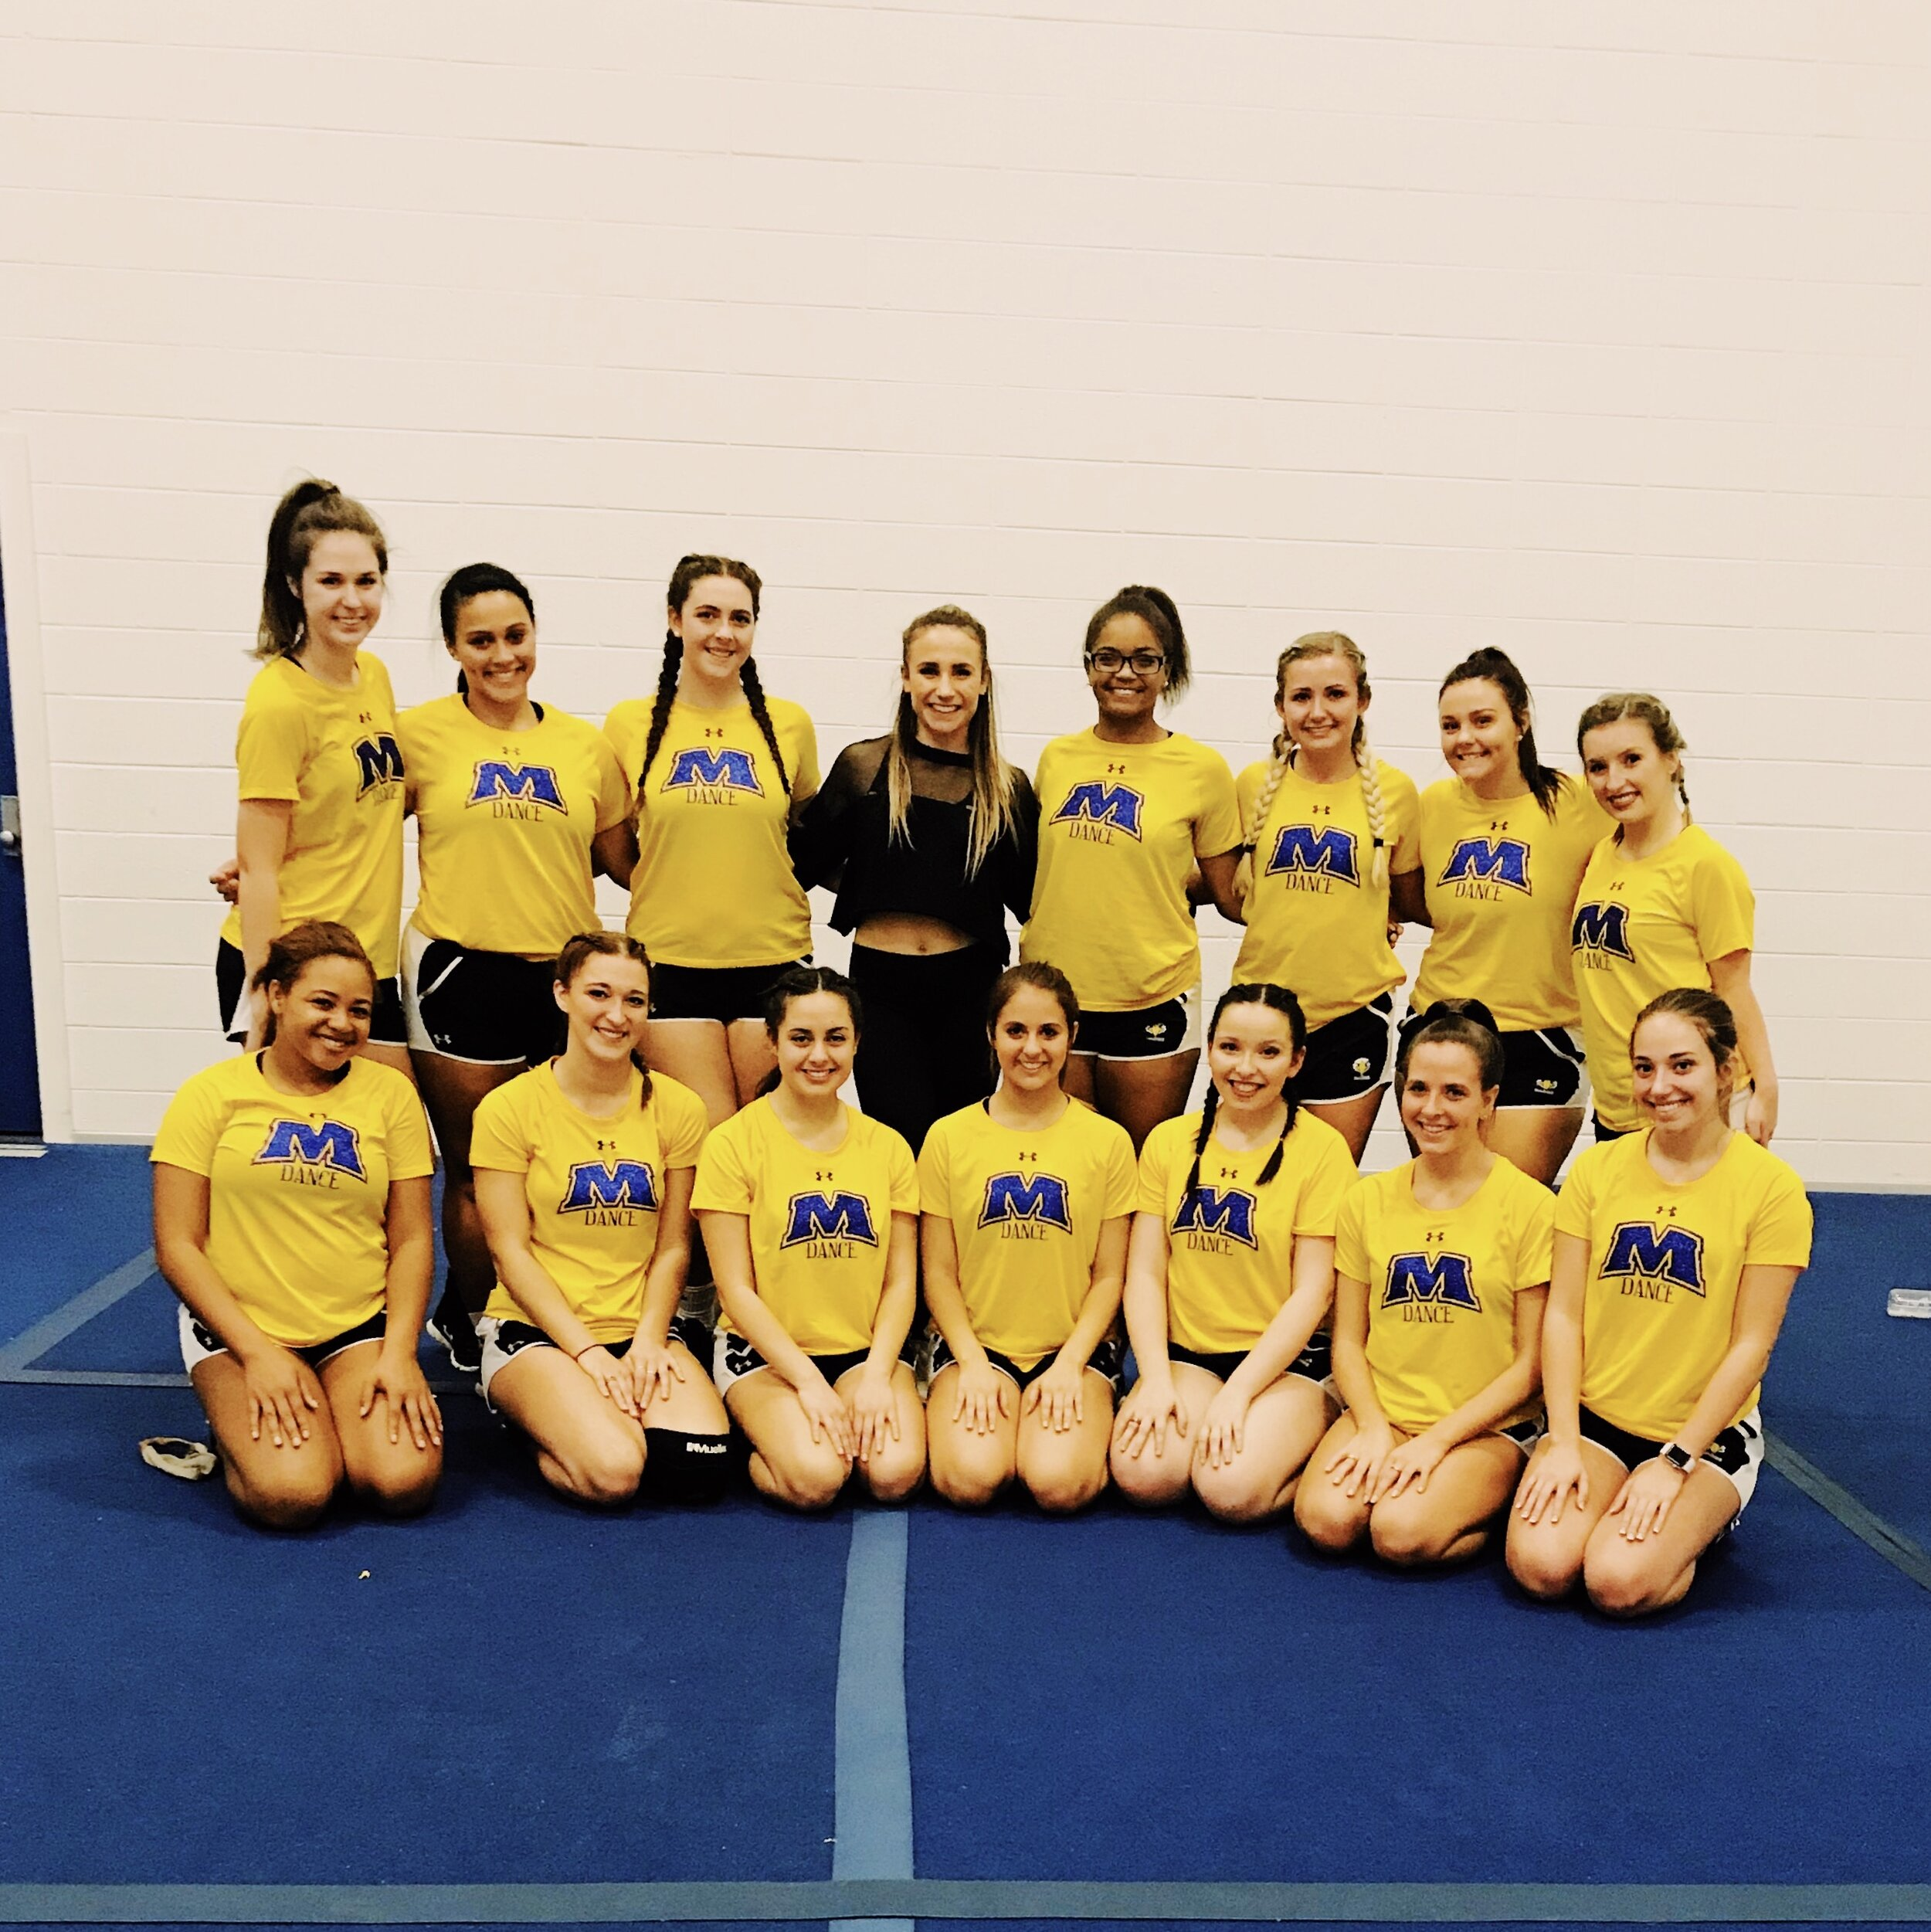 Morehead State University Dance Team